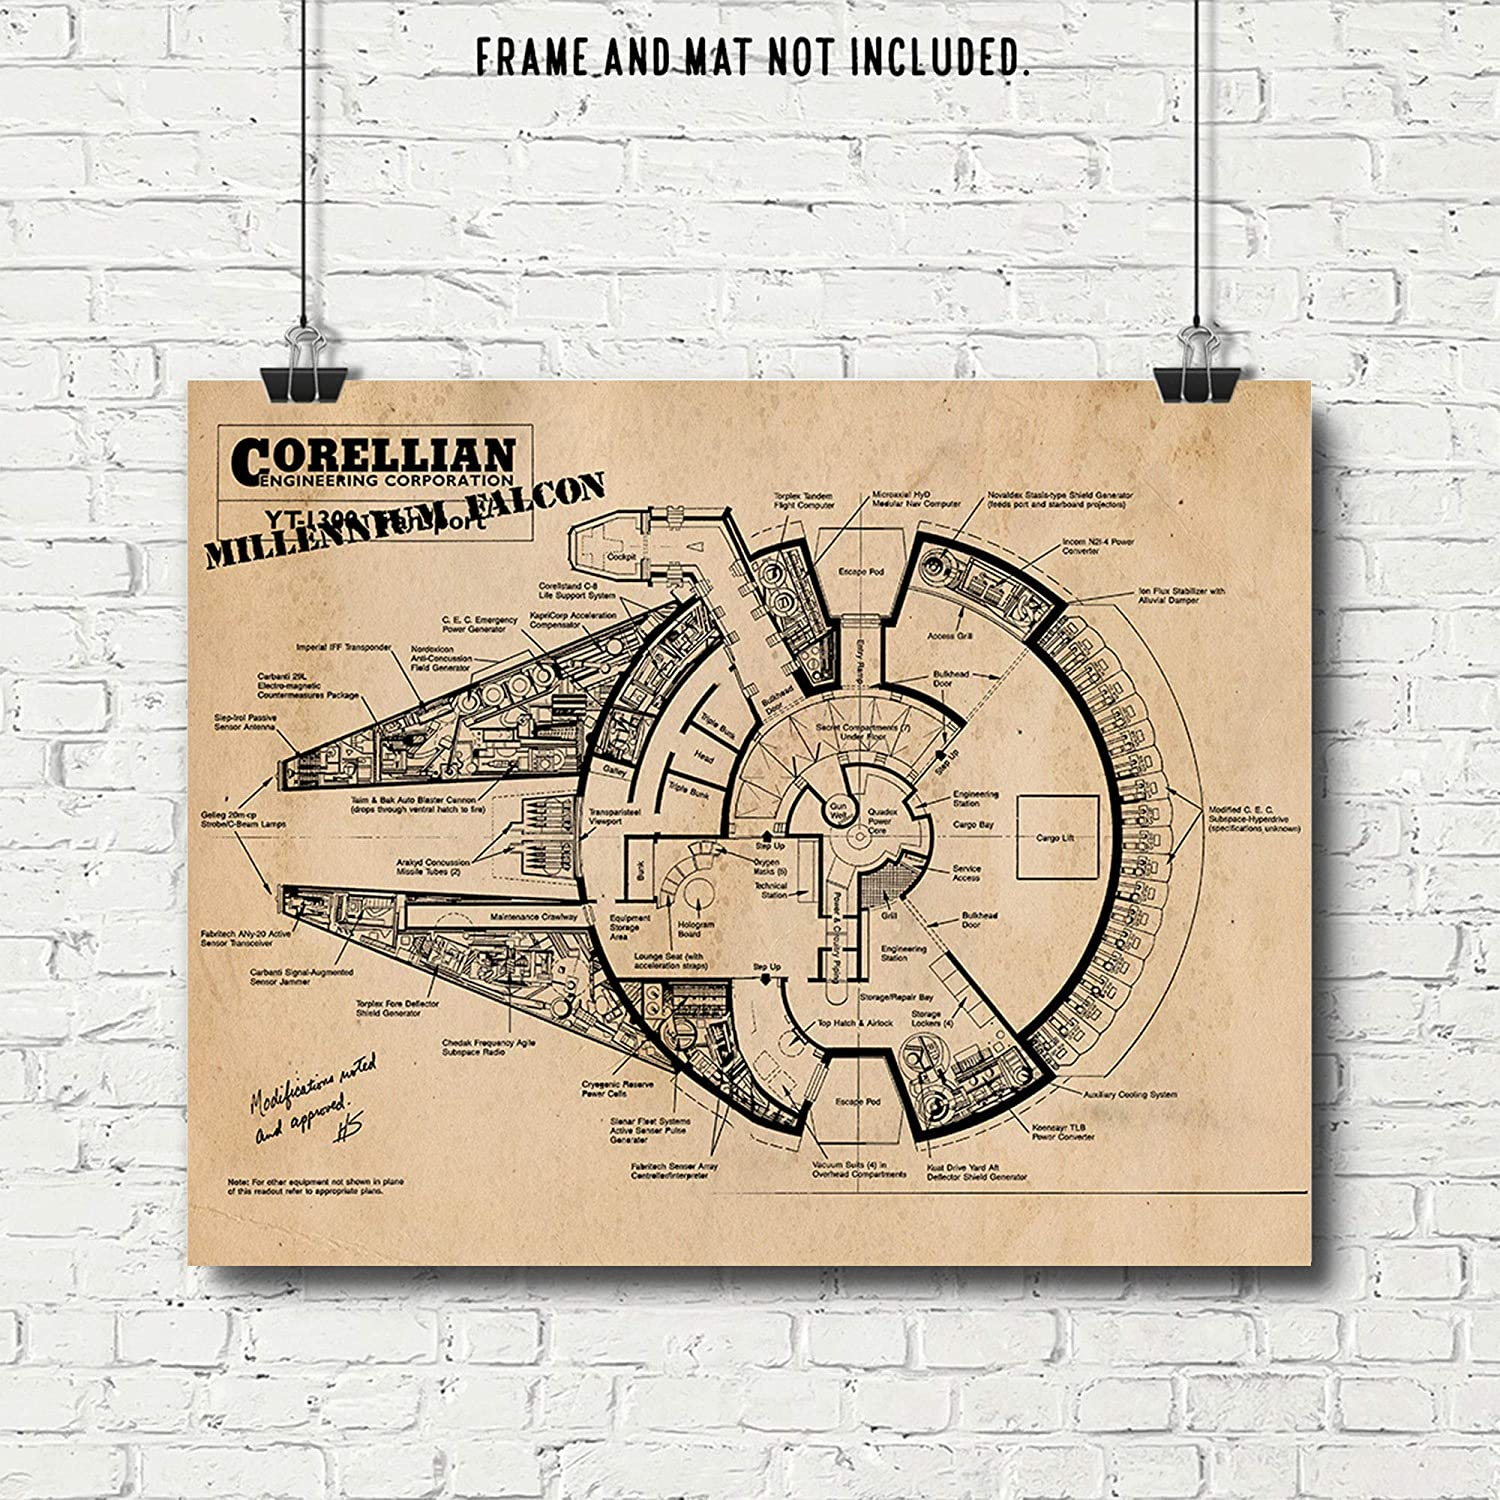 dfc6e6eb07c Original Star Wars Millenium Falcon Patent Art Poster Print - Set of 1 (One  11x14) Unframed - Great Wall Art Decor Gift for Home